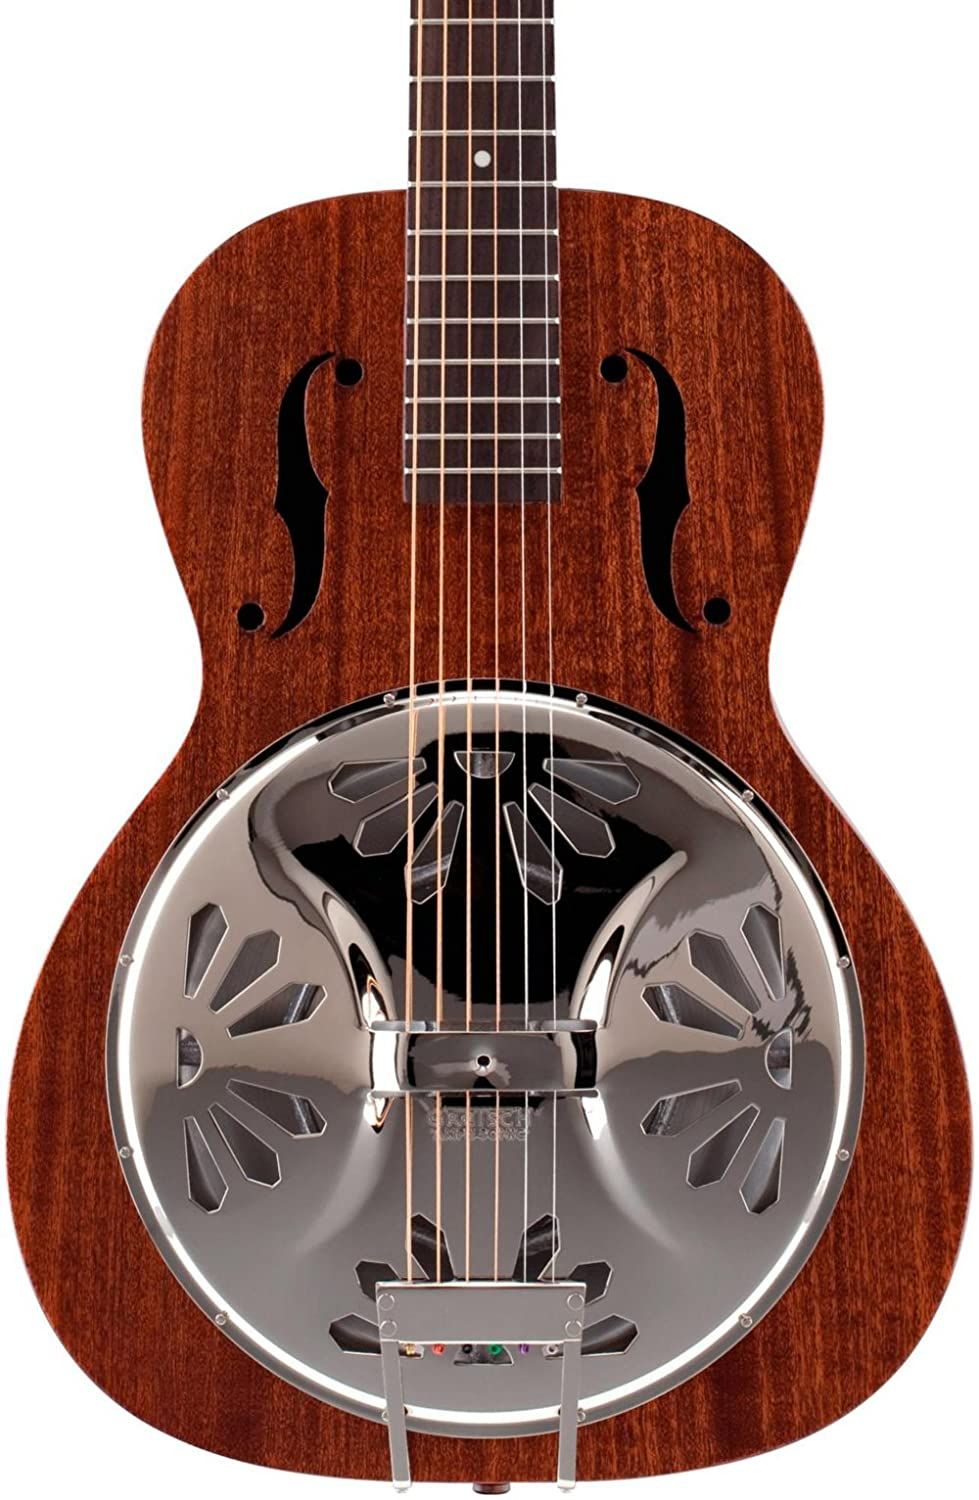 GRETSCH G9200 Boxcar Round-Neck Resonator Guitar リゾネイターギター B0149J3Z7W